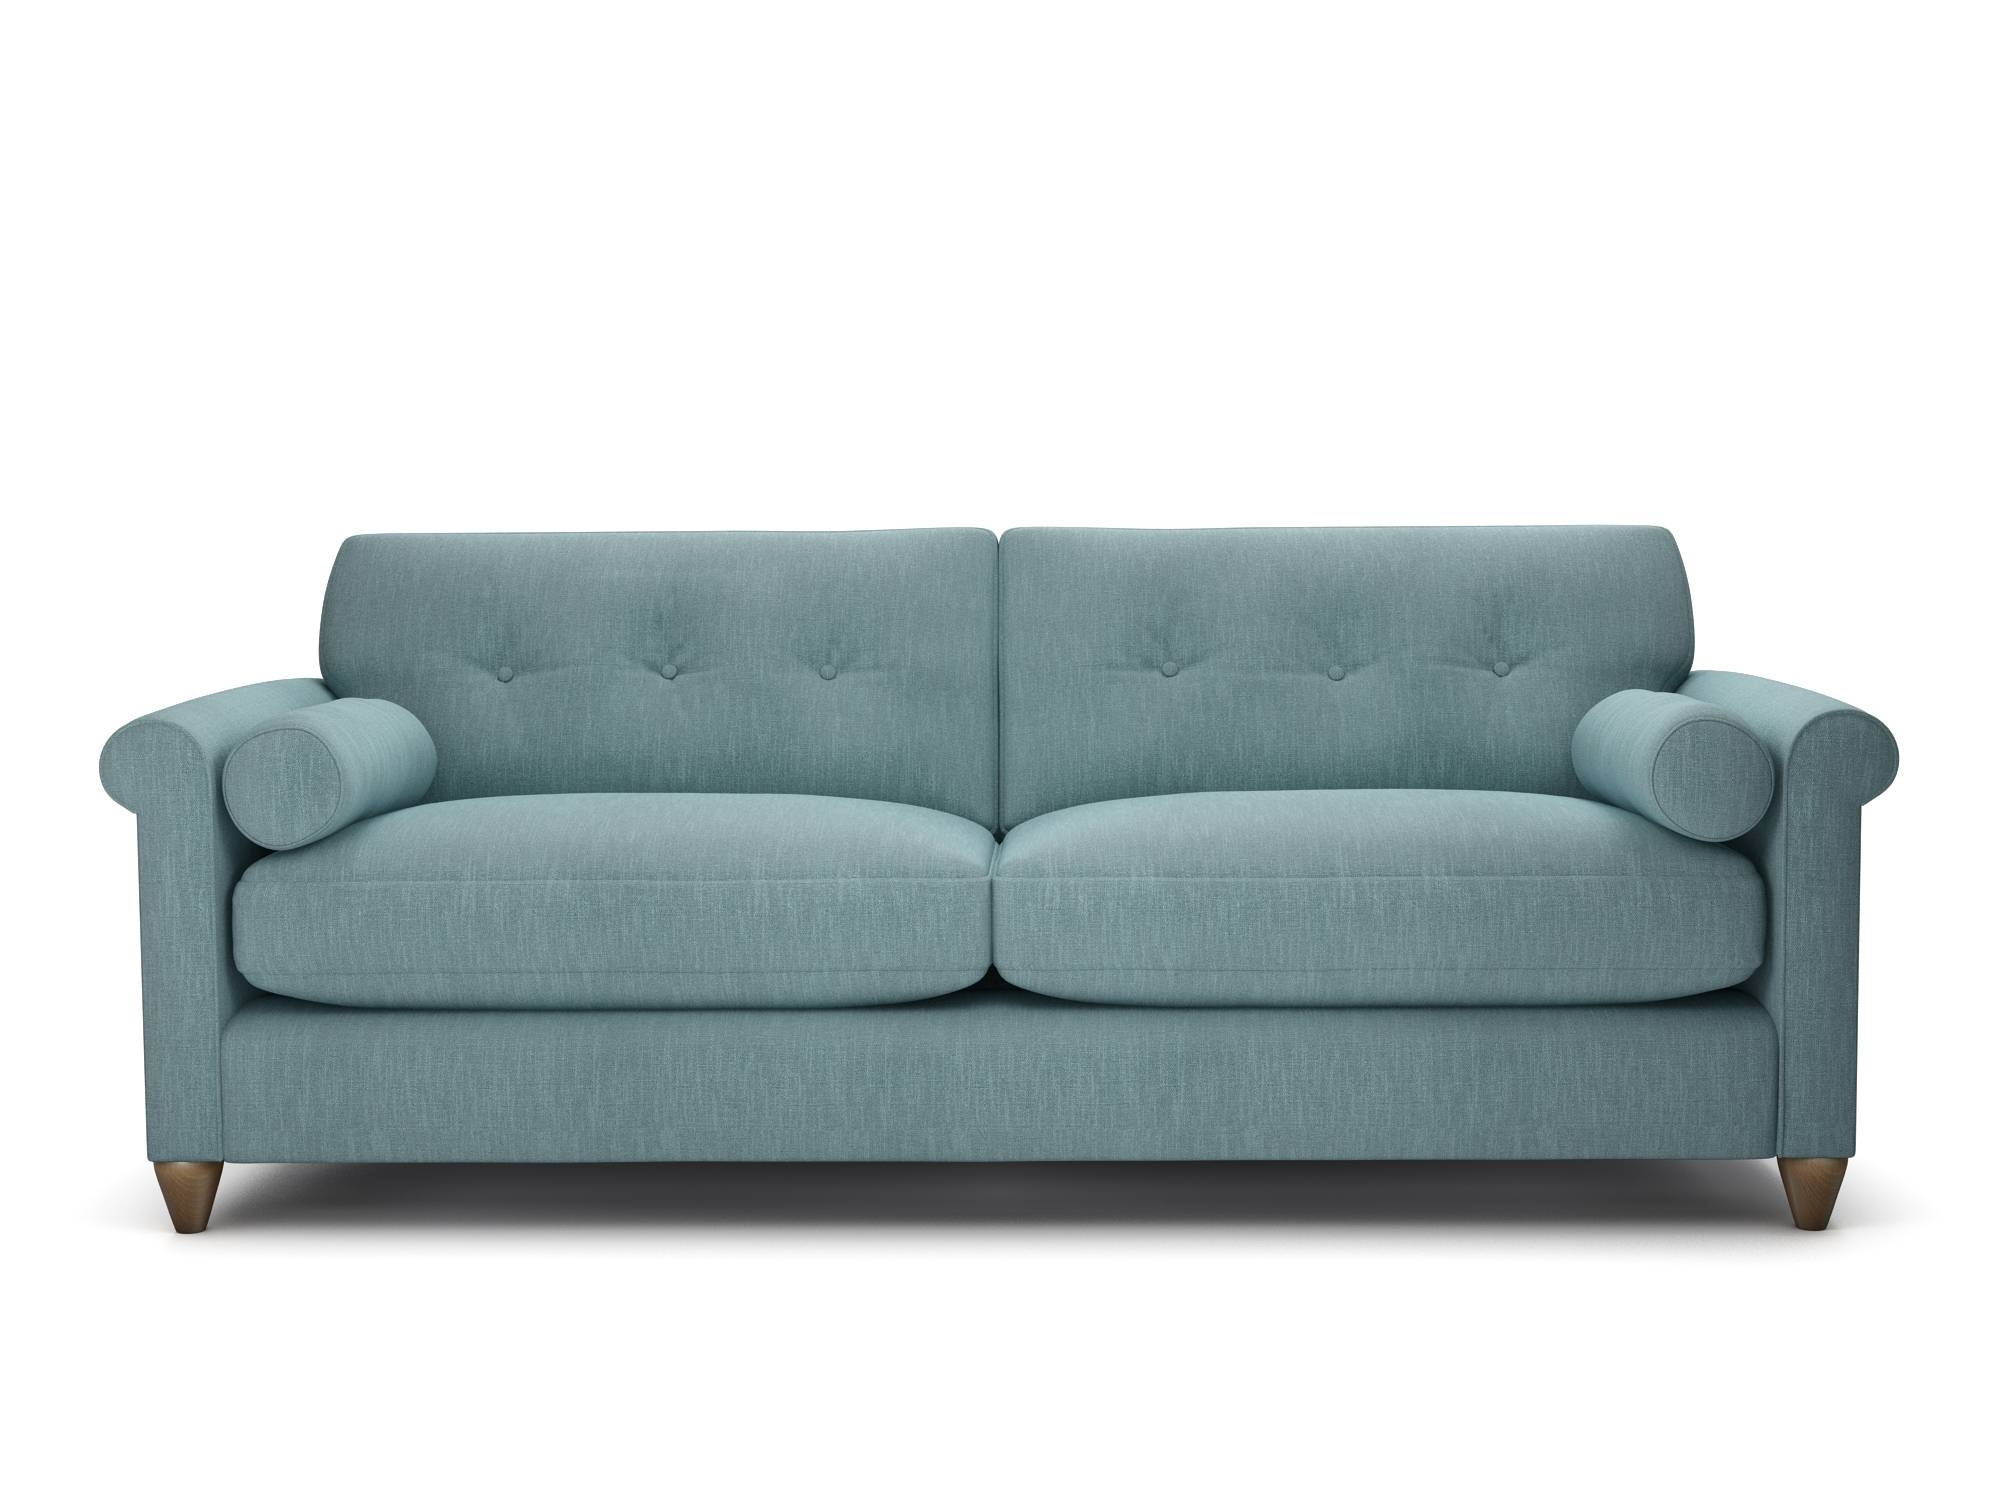 Furniture: Ava Velvet Tufted Sleeper Sofa | Tufted Sleeper Sofa within Ava Tufted Sleeper Sofas (Image 3 of 15)